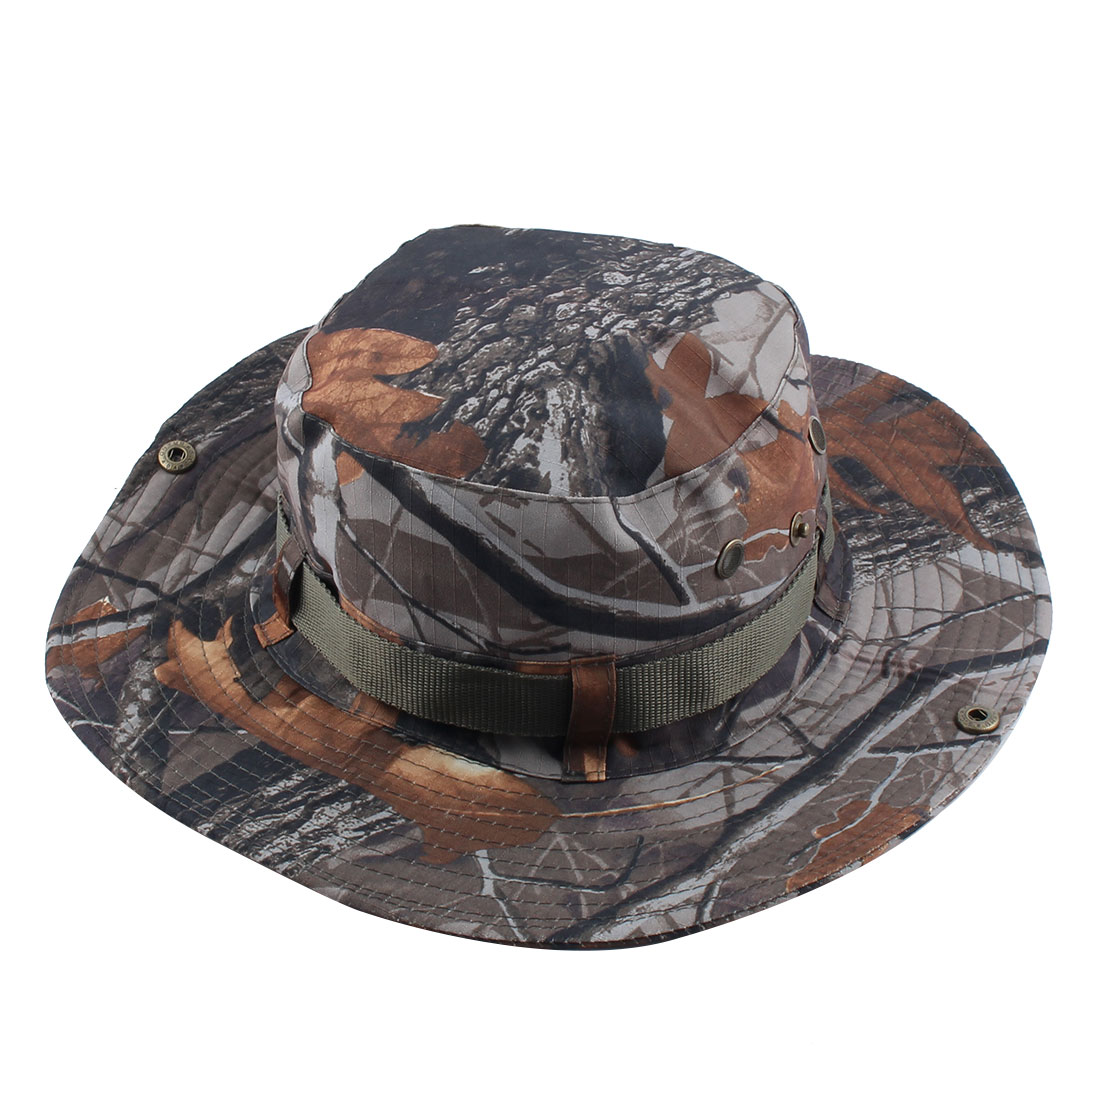 Fisherman Outdoor Sports Mountaineering Hunting Adjustable Strap Wide Brim Protector Bucket Summer Cap Fishing Hat Camouflage